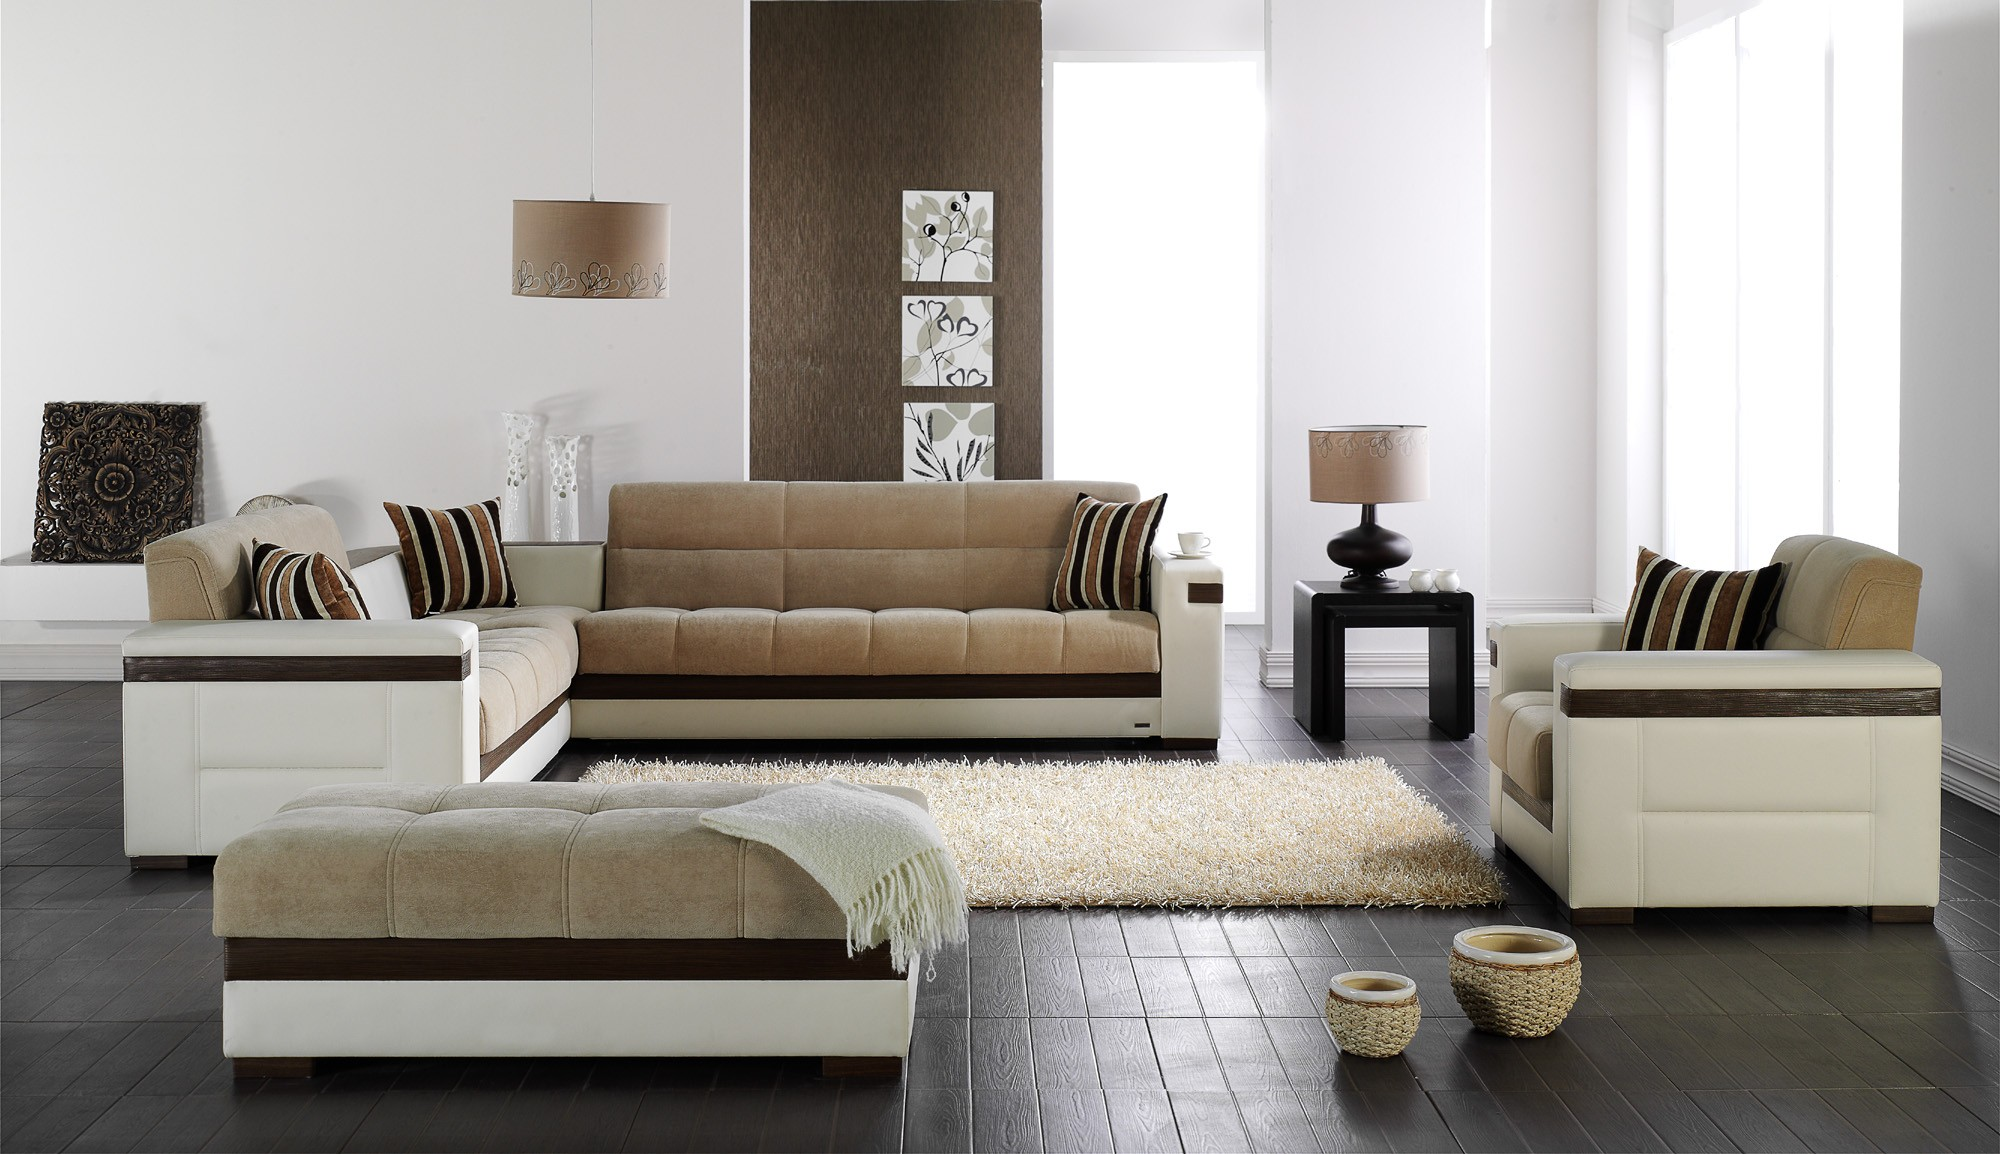 Sectional Sleeper Sofa | Full Sleeper Sofa | Sleeper Sectional Sofa With Chaise